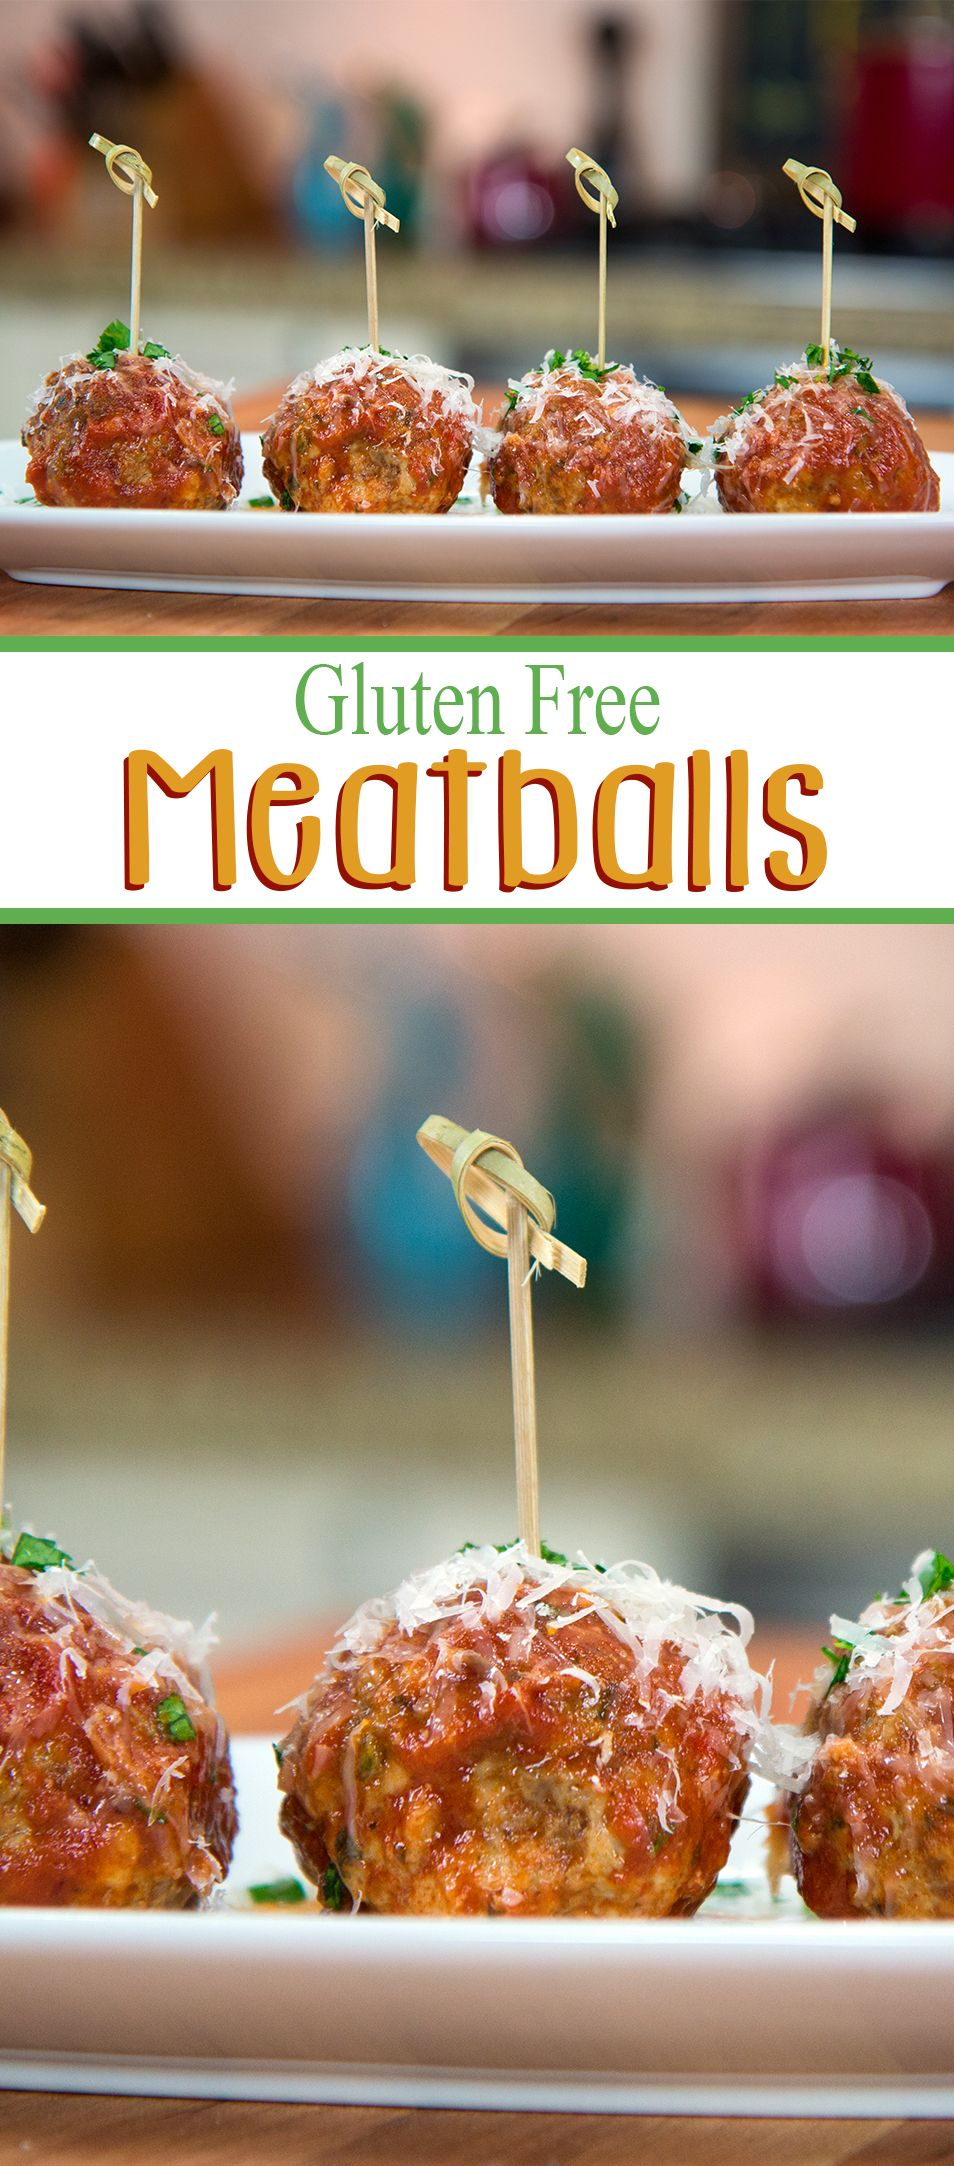 These juicy Gluten Free meatballs are bursting with flavor